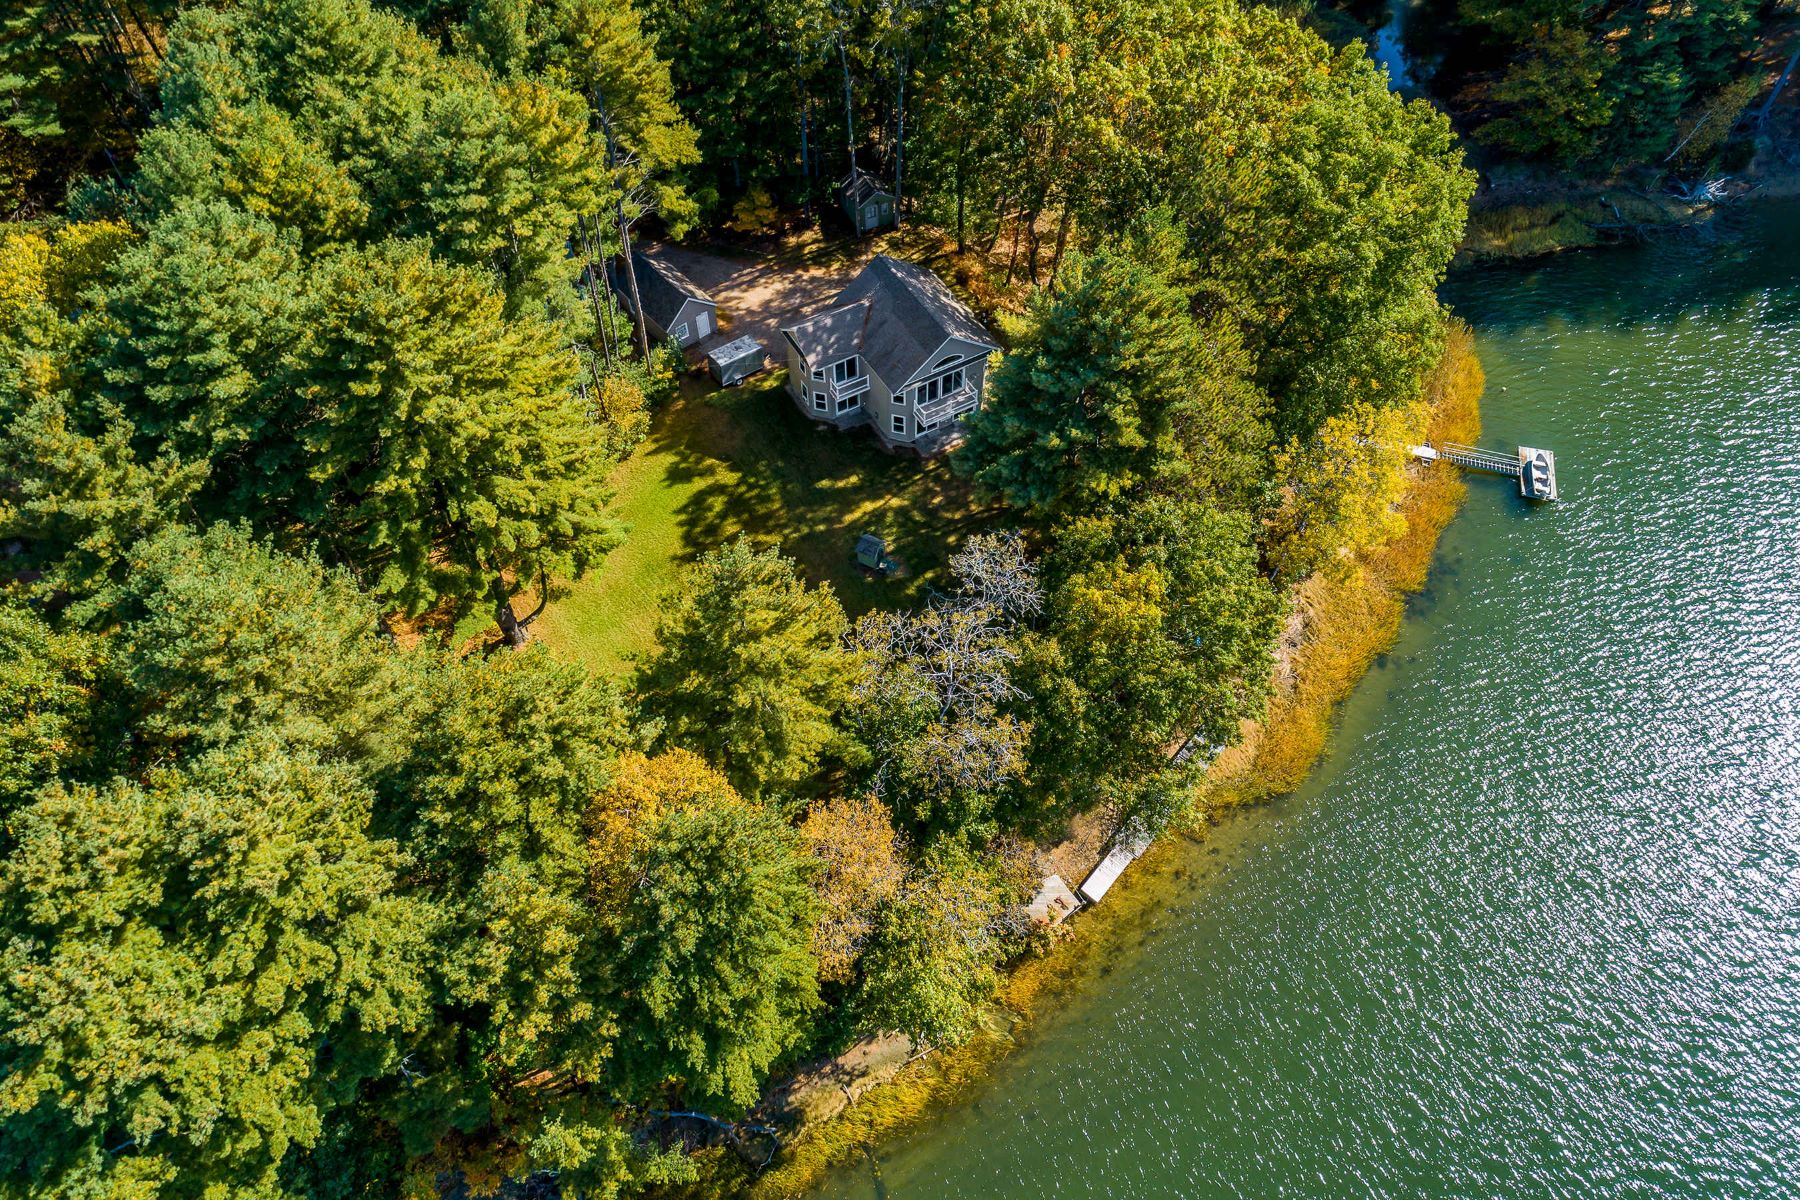 Single Family Homes for Active at 3 Bedroom Riverfront Colonial in Eliot 29 Osprey Cove Lane Eliot, Maine 03903 United States